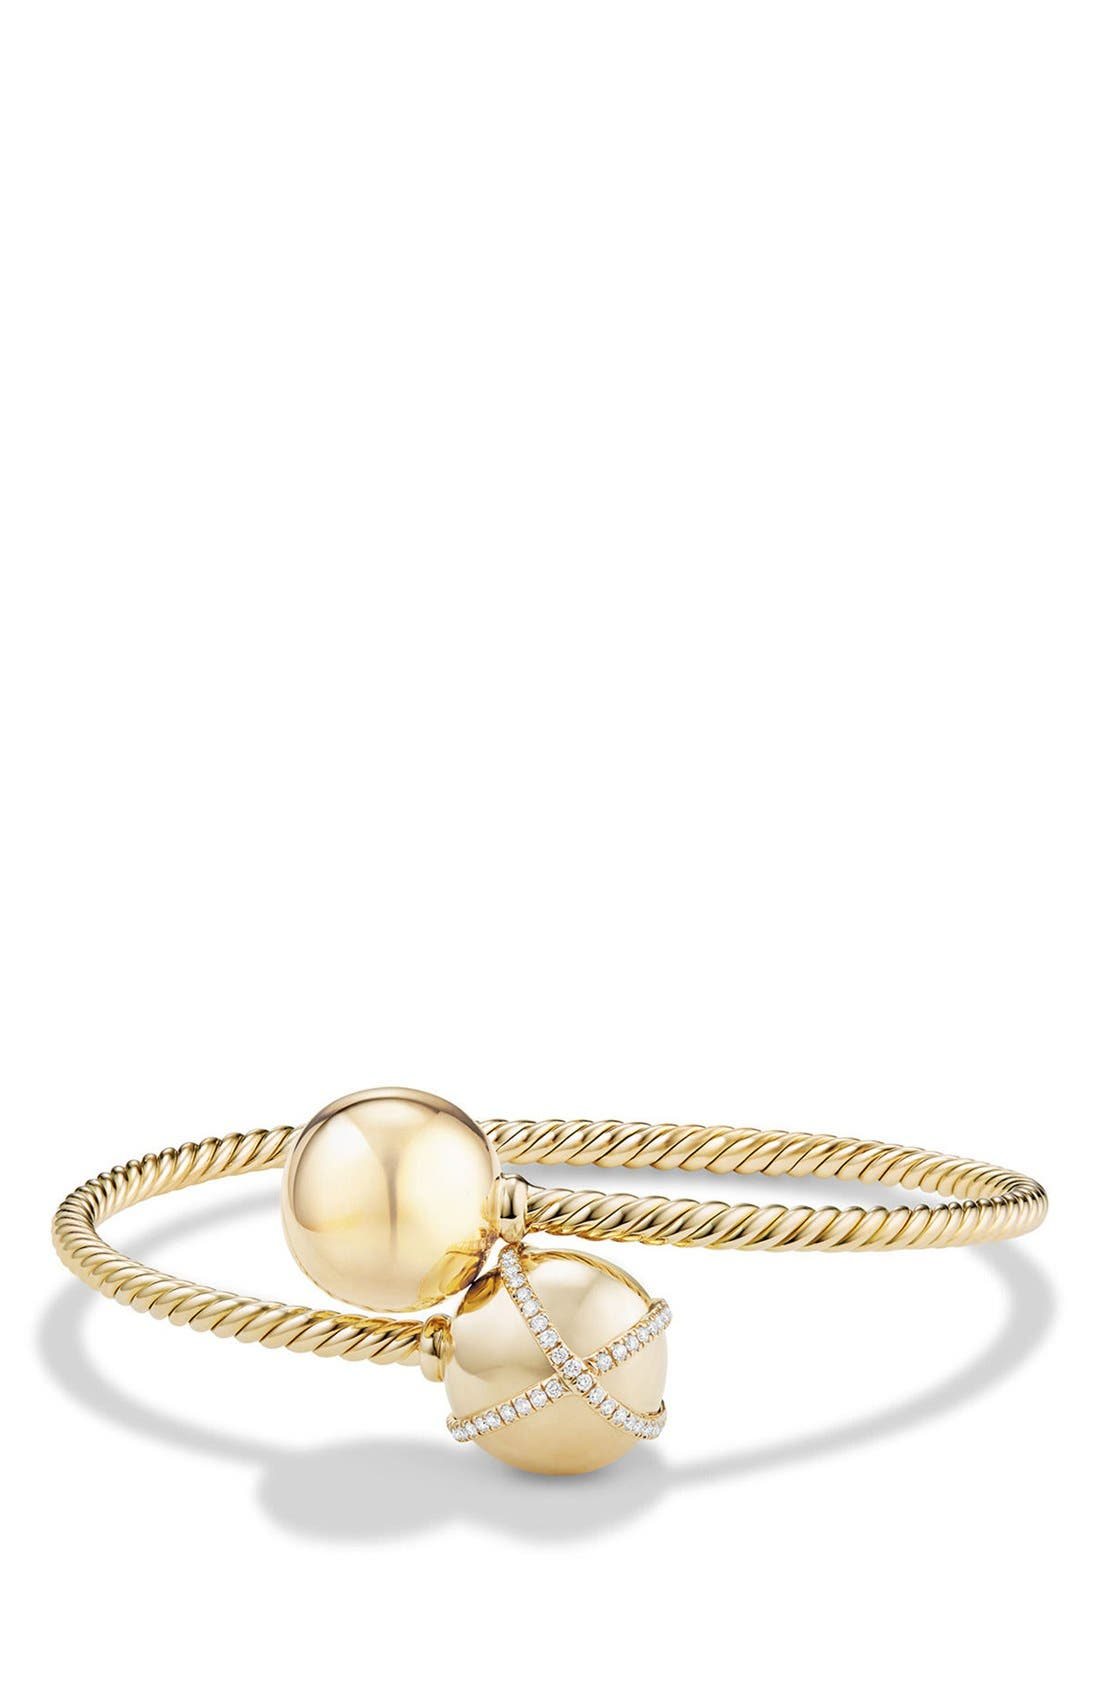 David Yurman 'Solari Bypass' Bracelet with Diamonds in 18K Gold